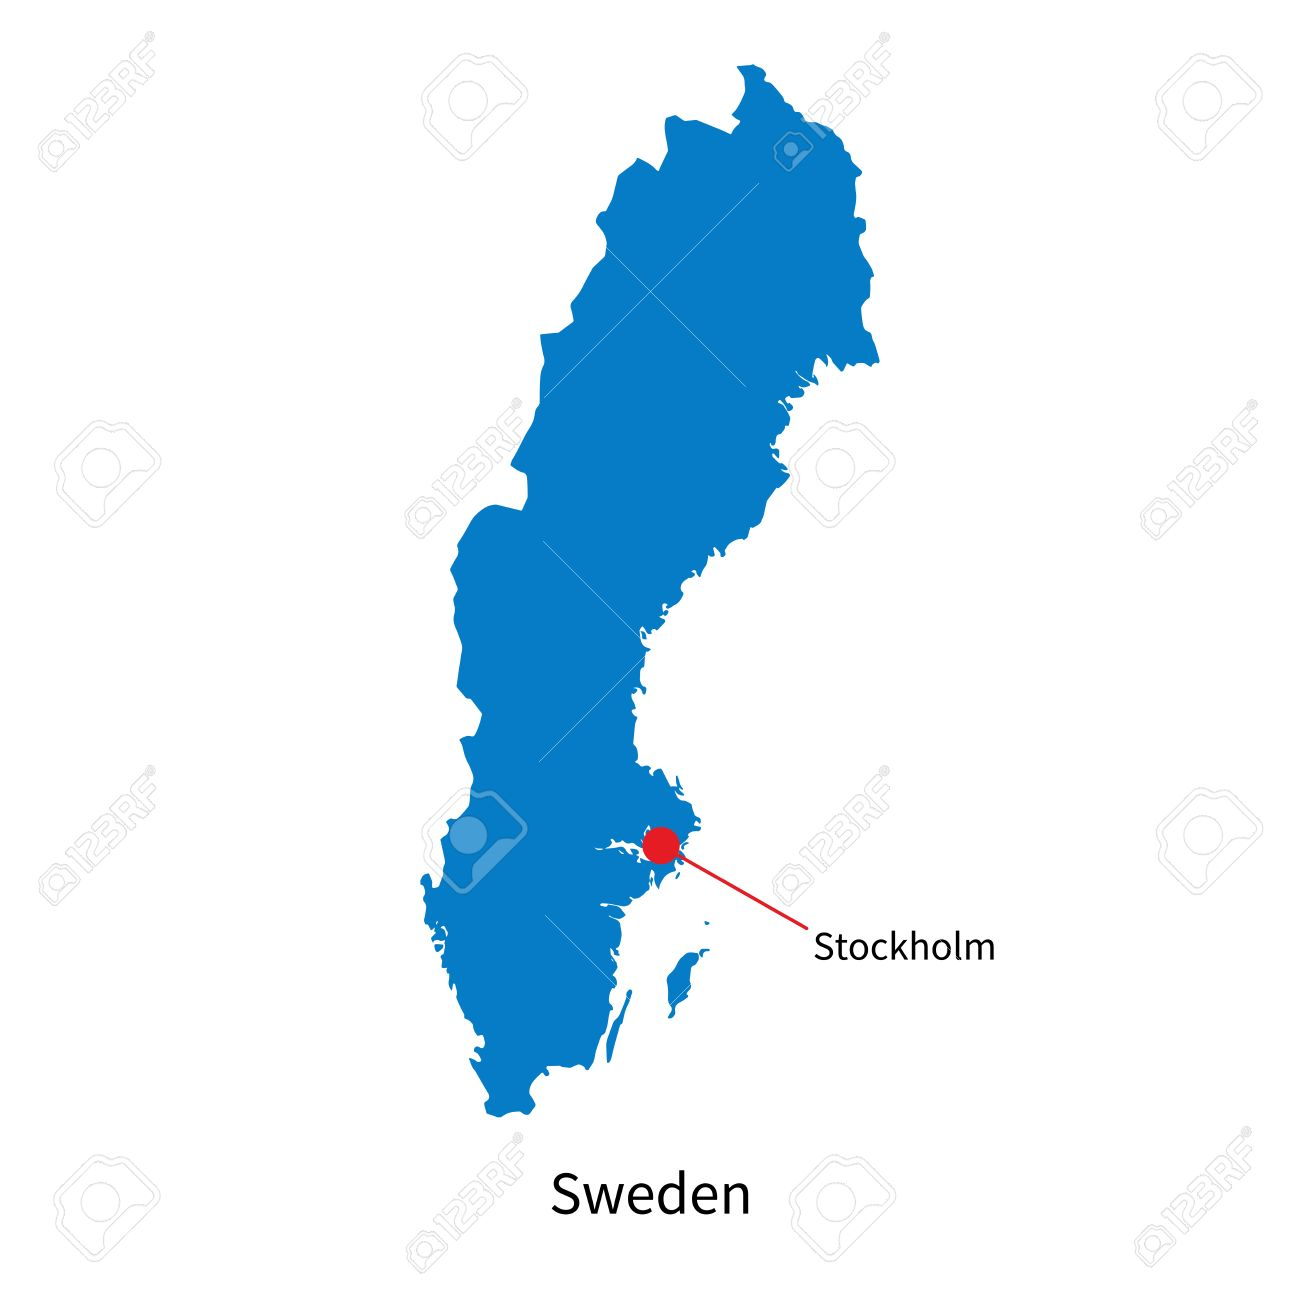 Detailed Map Of Sweden And Capital City Stockholm Royalty Free - Sweden map city